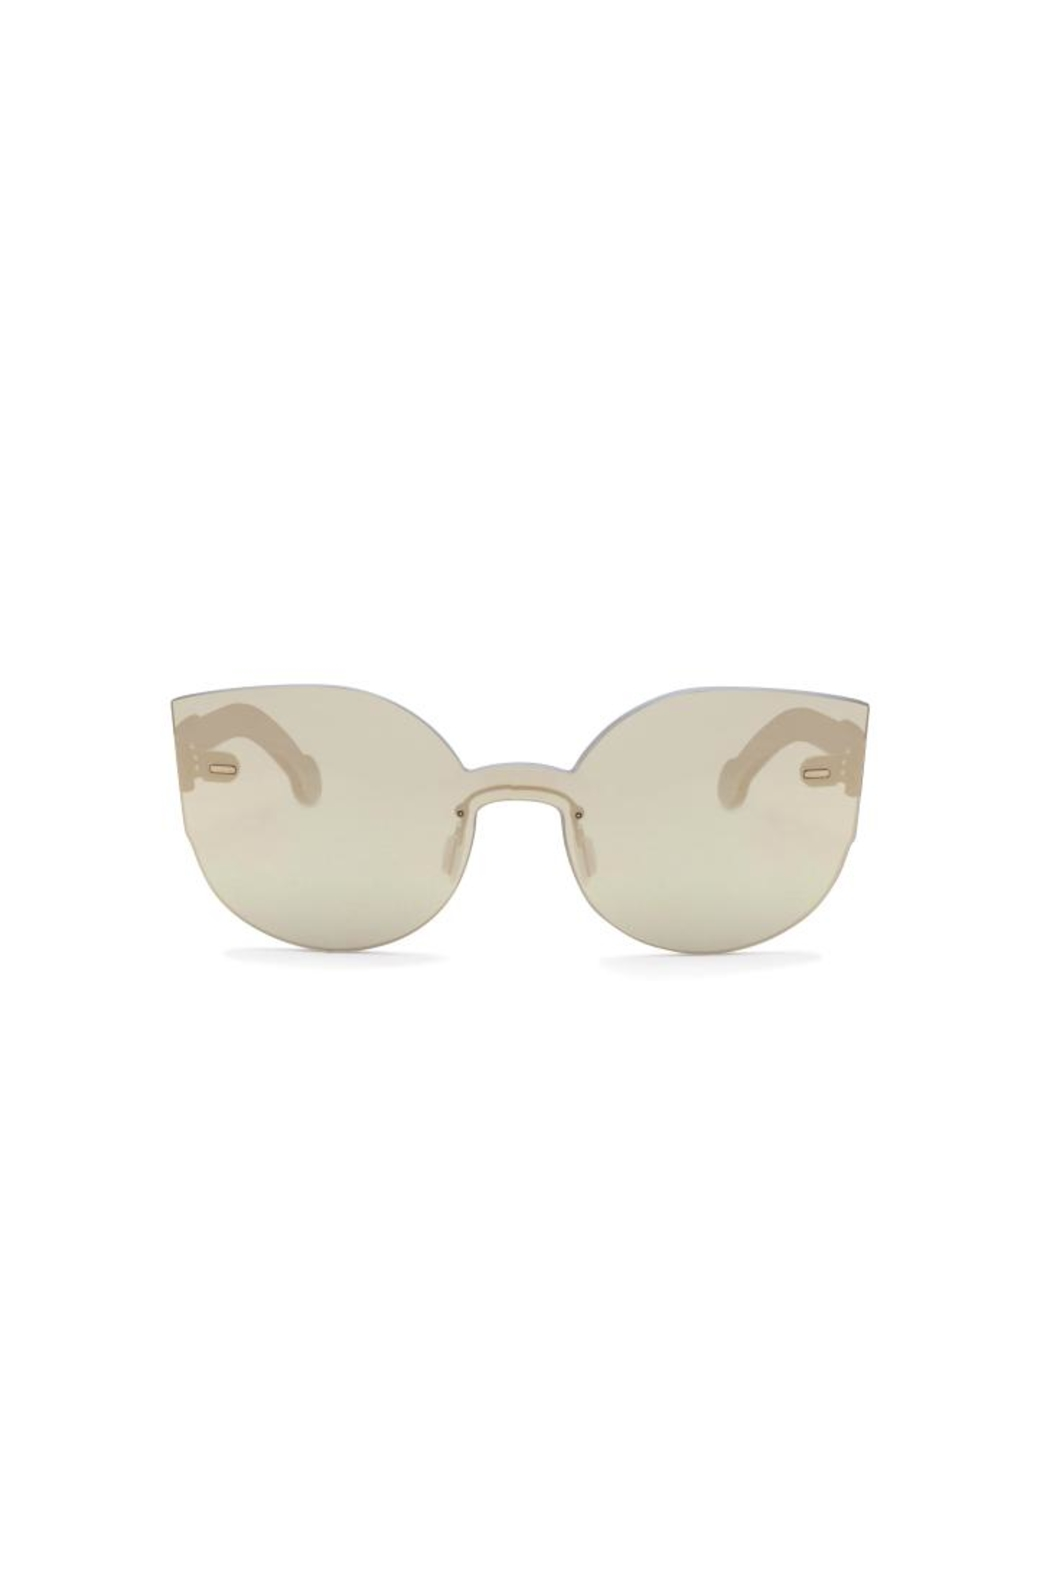 RetroSuperFuture Retrosuperfuture Ivory Sunnies - Main Image